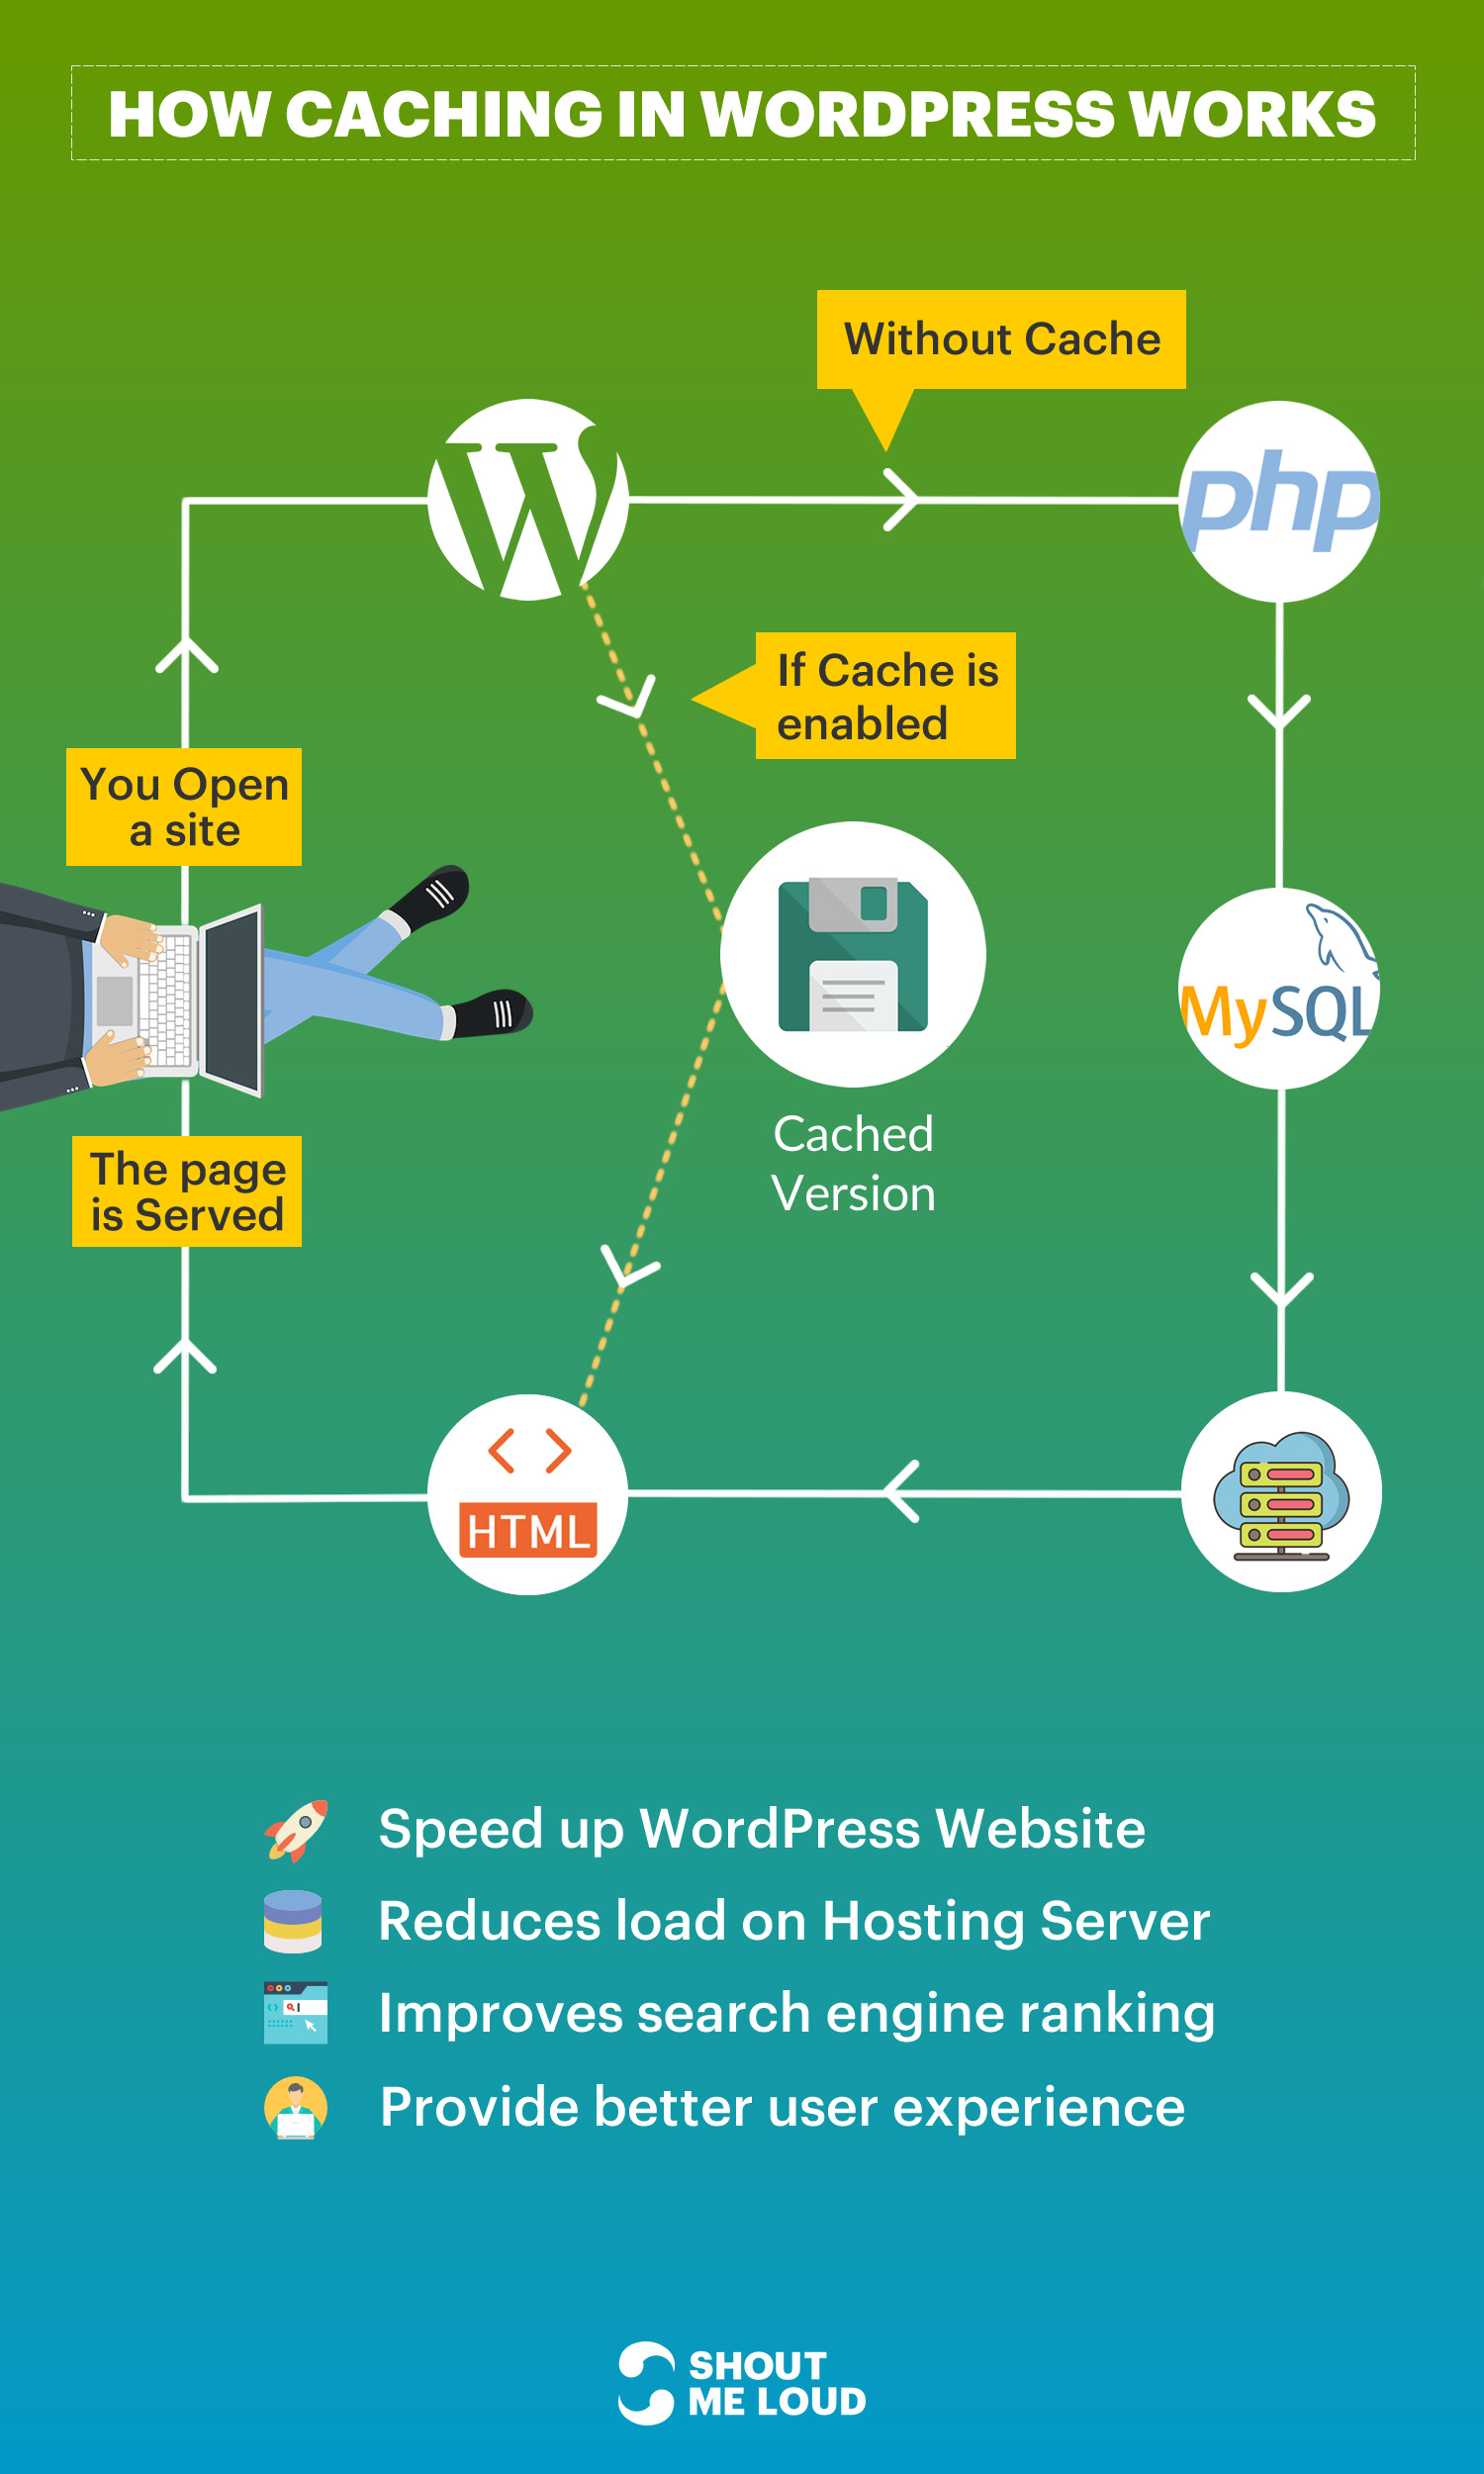 How caching in WordPress works